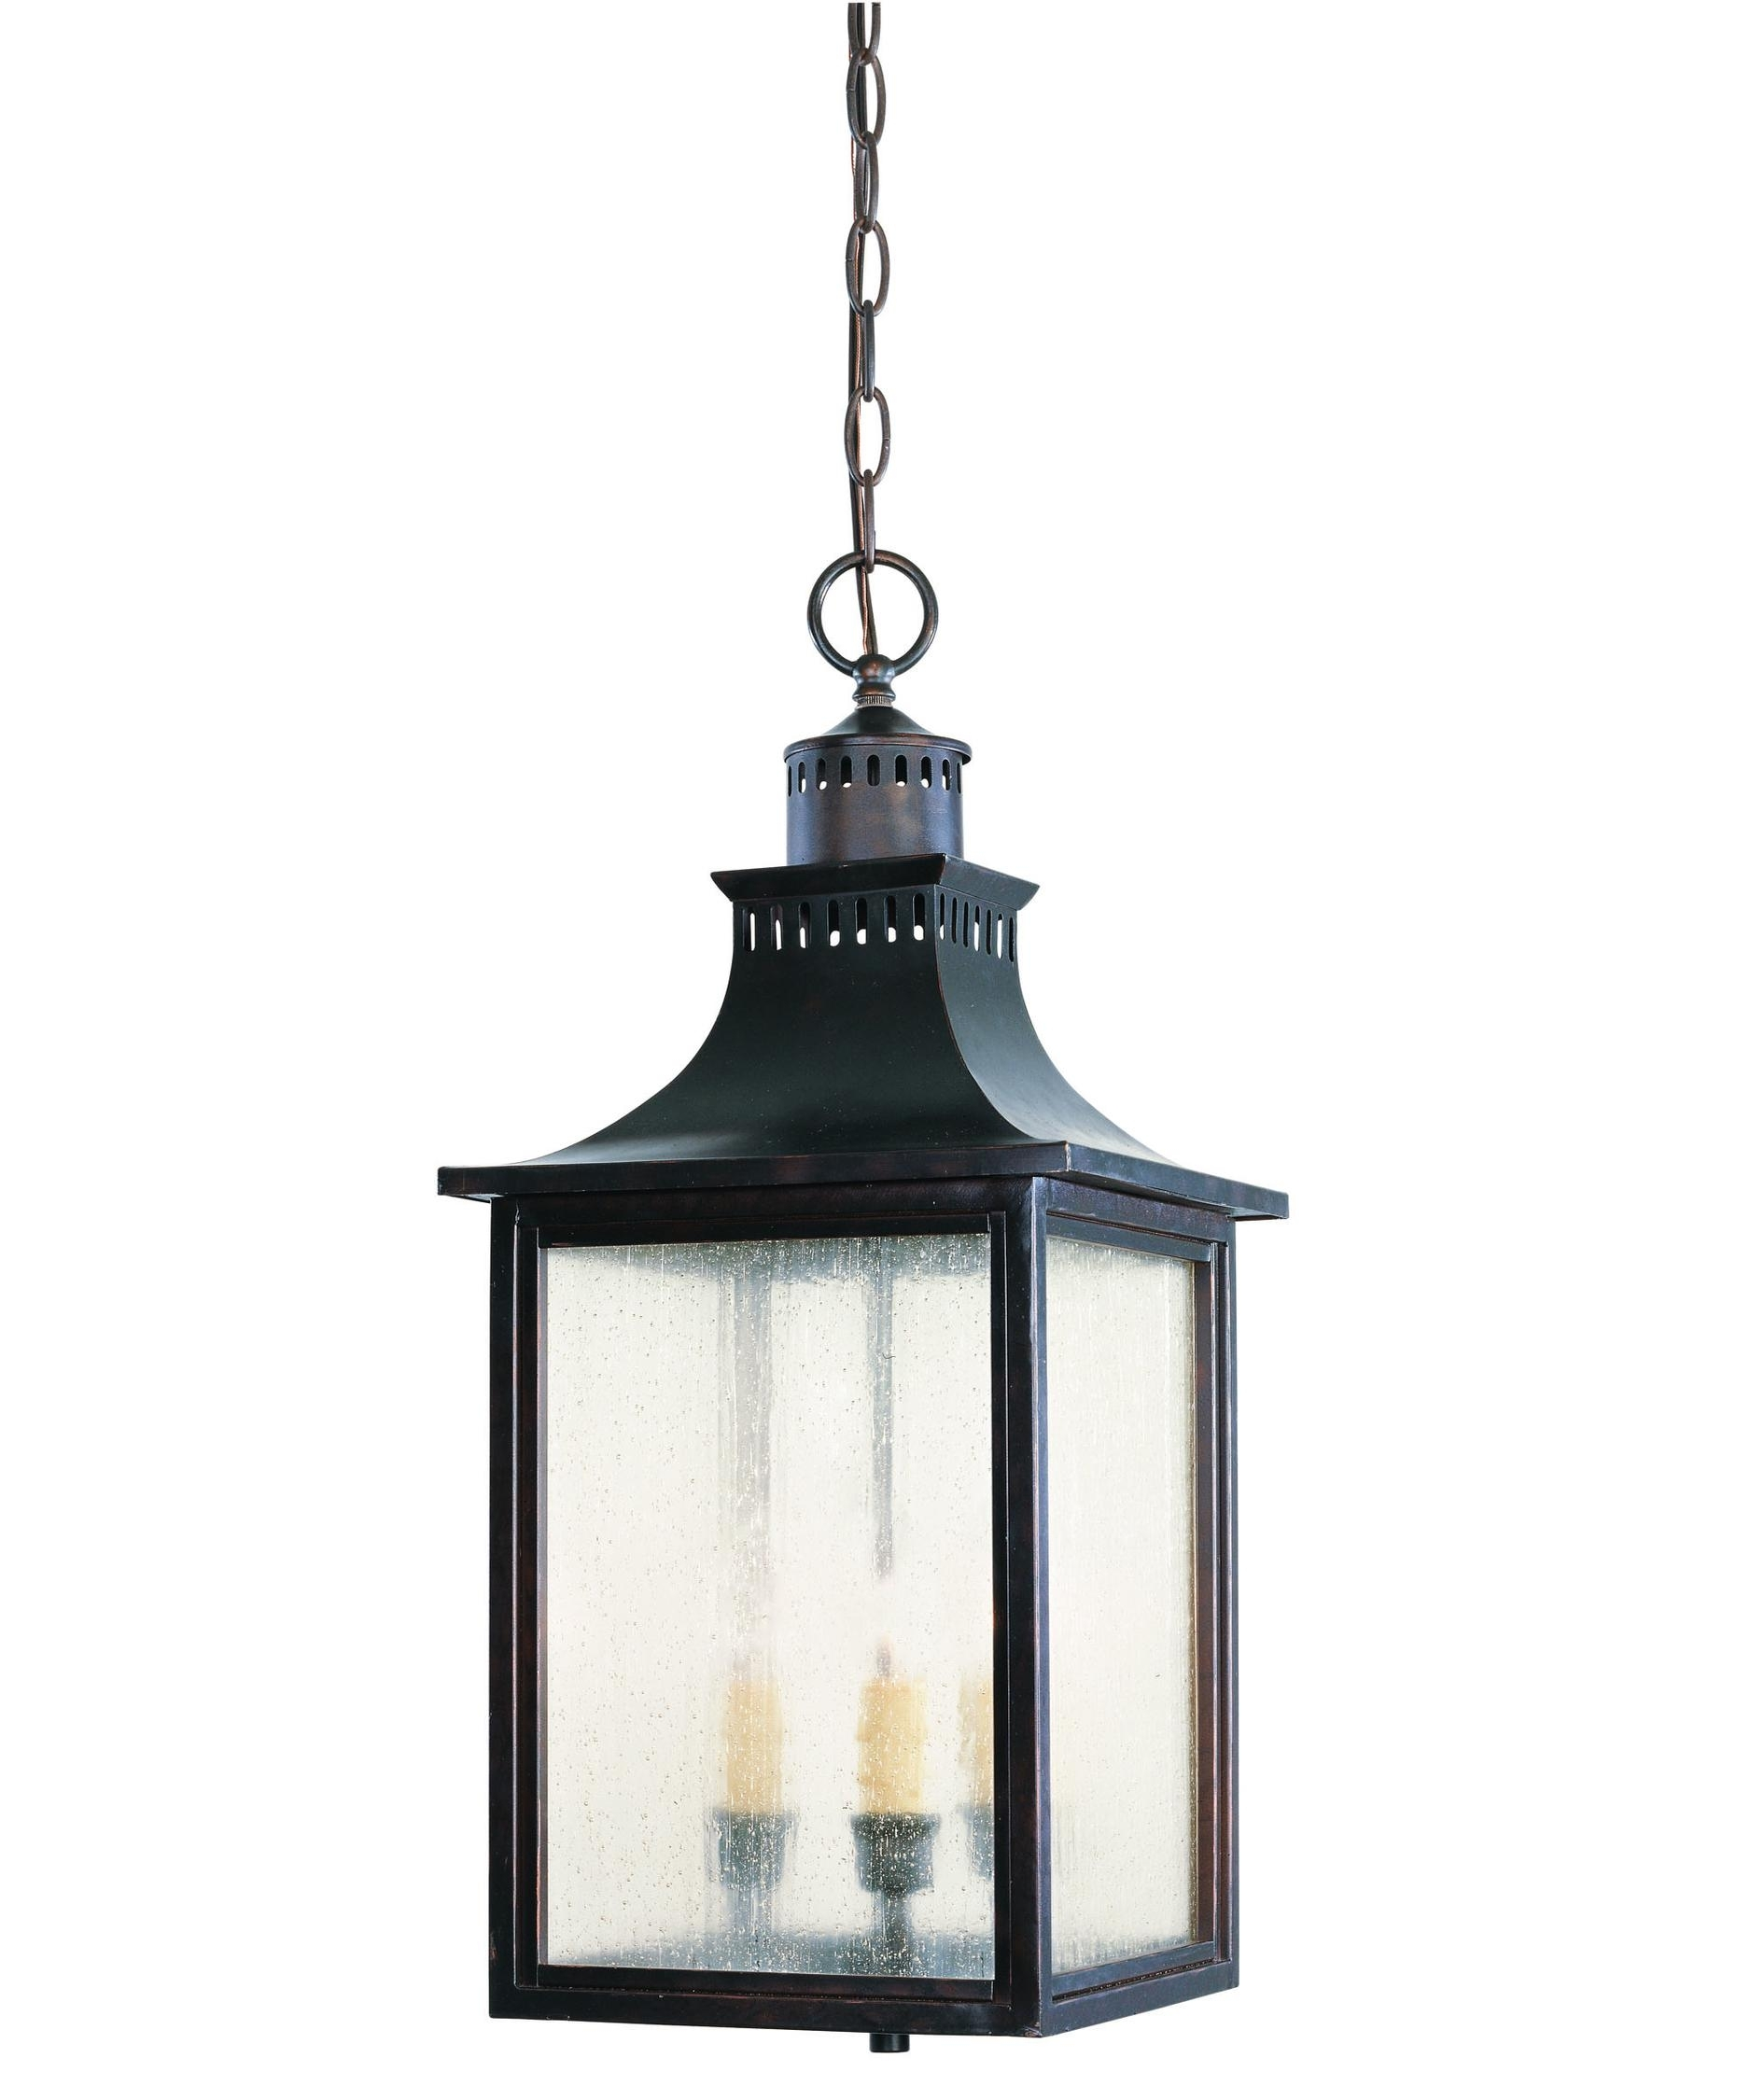 Savoy House 5 256 Monte Grande 10 Inch Wide 3 Light Outdoor Hanging Pertaining To Outdoor Hanging Metal Lanterns (View 13 of 15)